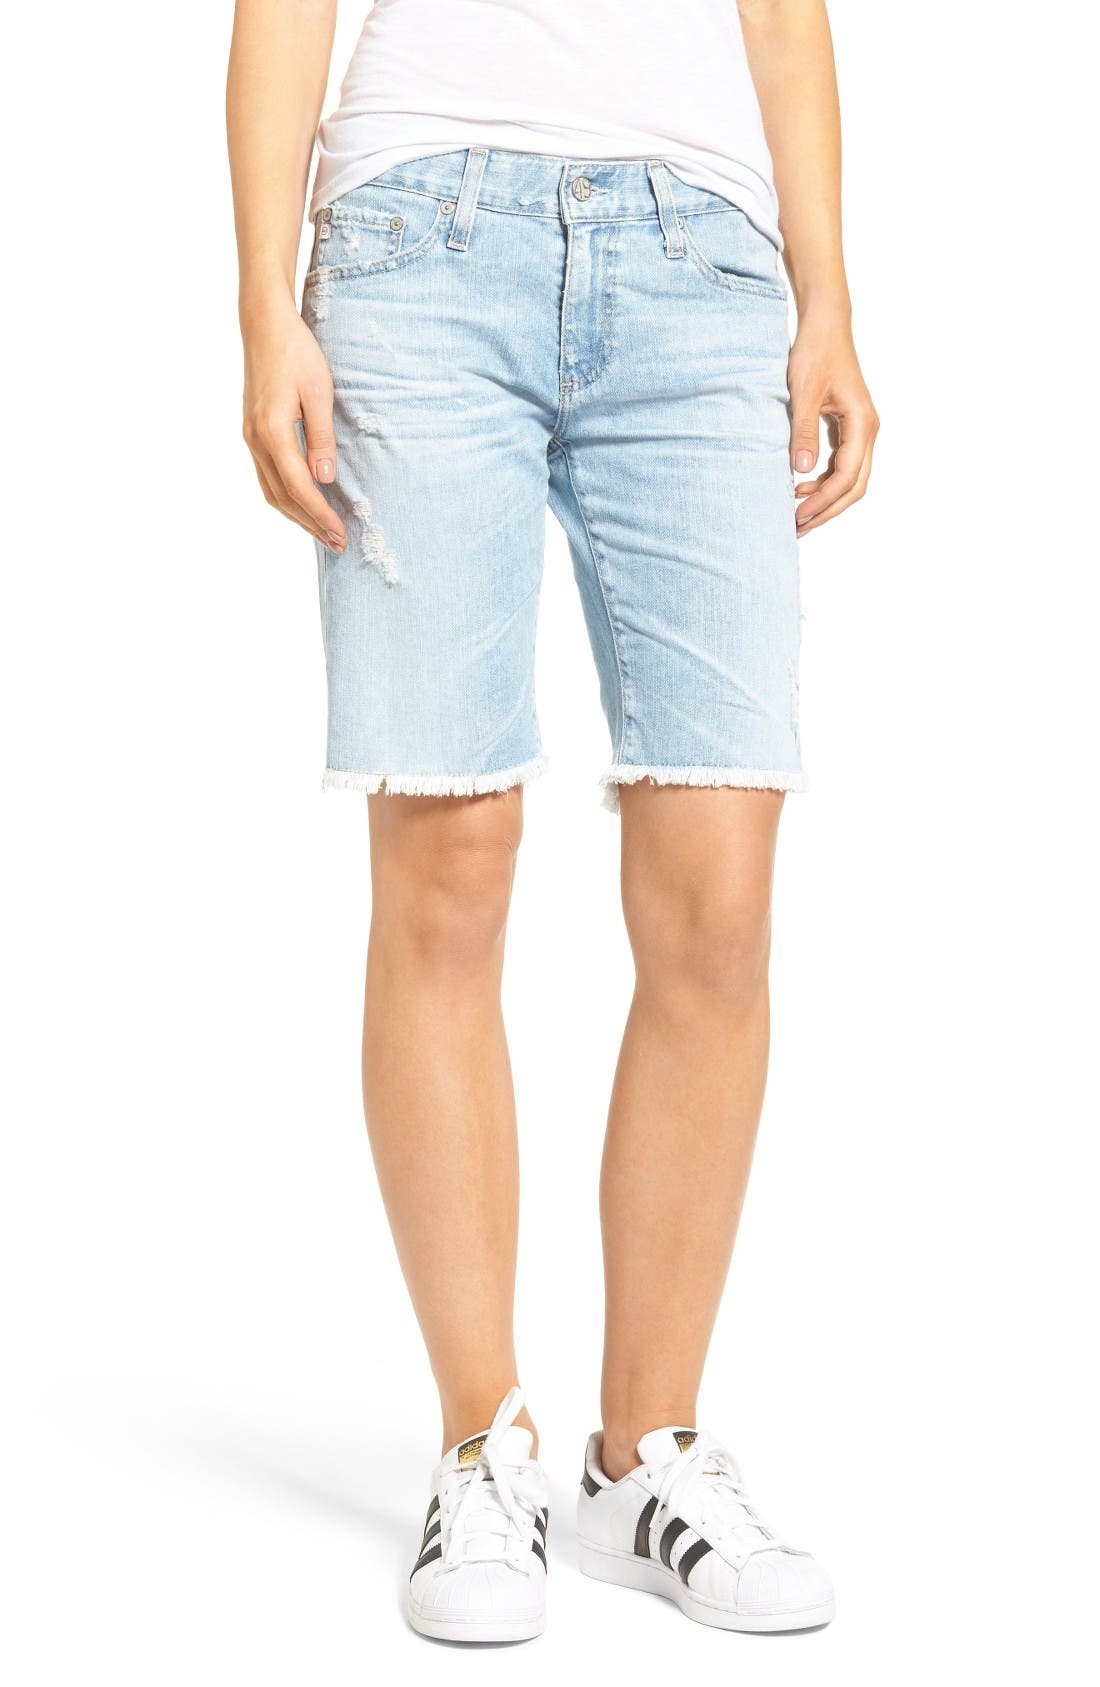 Alternate Image 1 Selected - AG The Nikki Denim Bermuda Shorts (24 Year Relief)